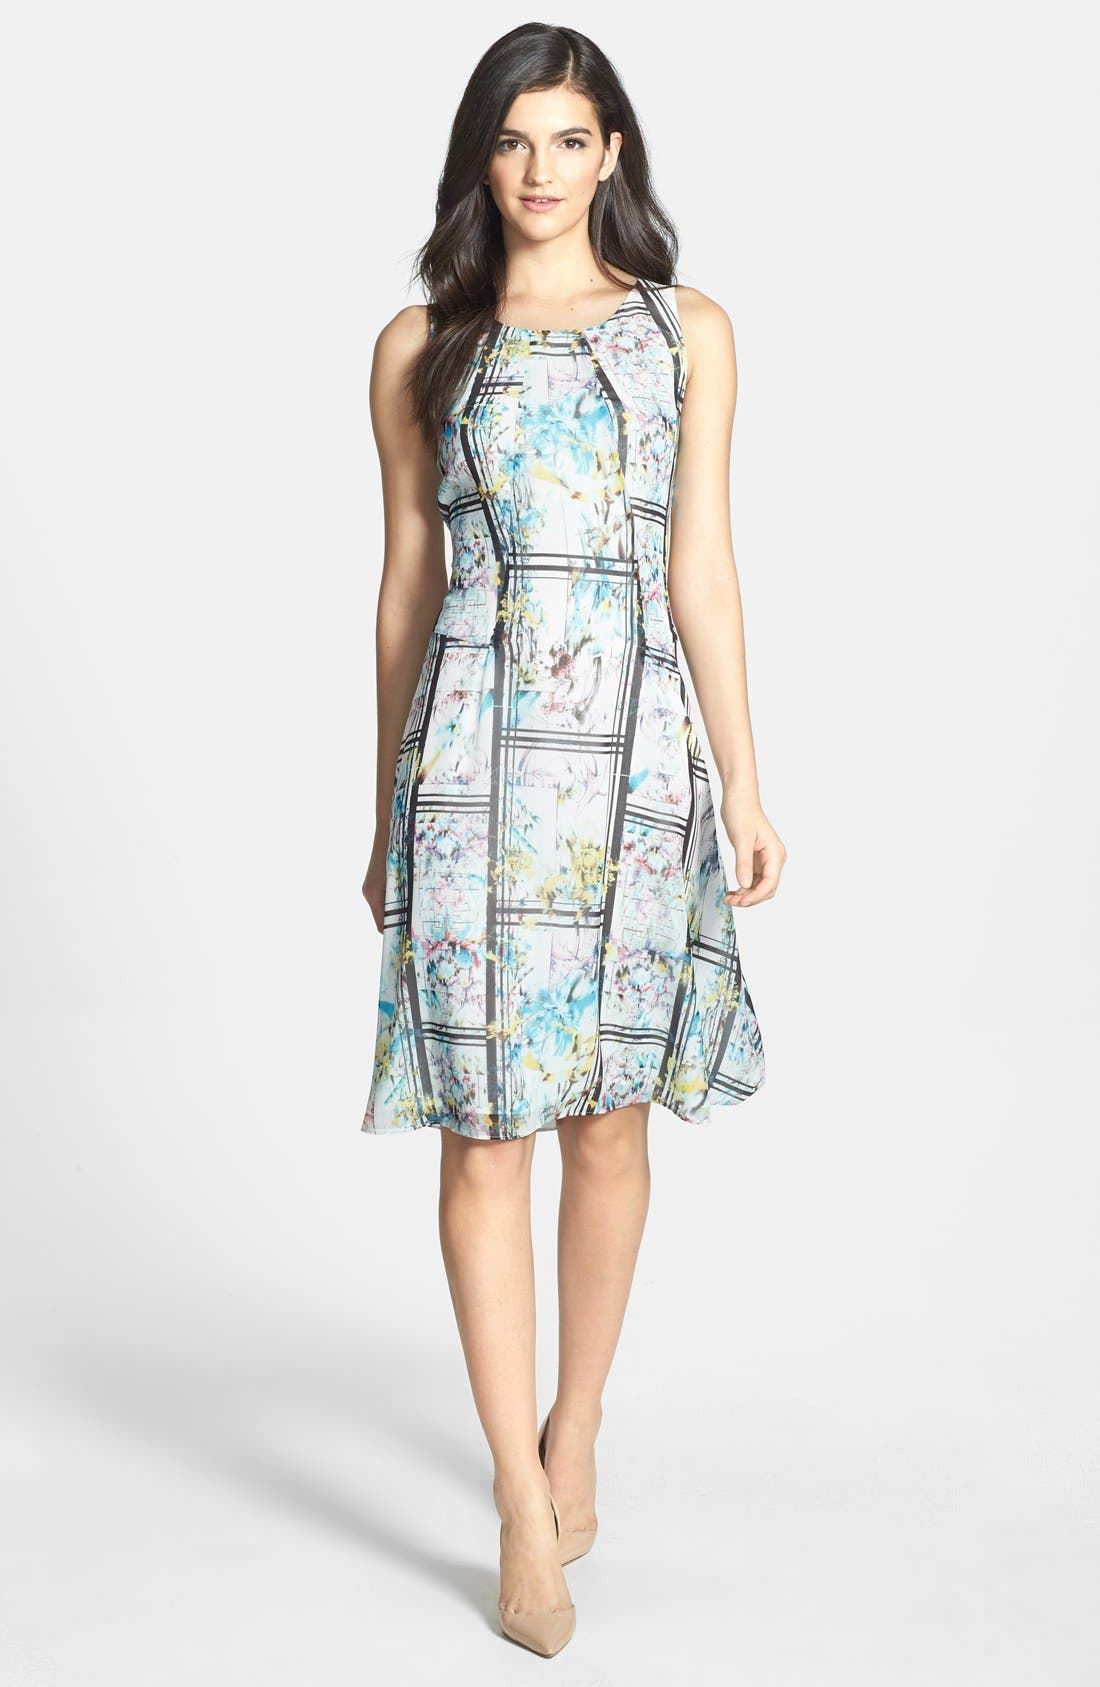 Main Image - Chelsea28 Photorealistic Print Fit & Flare Dress